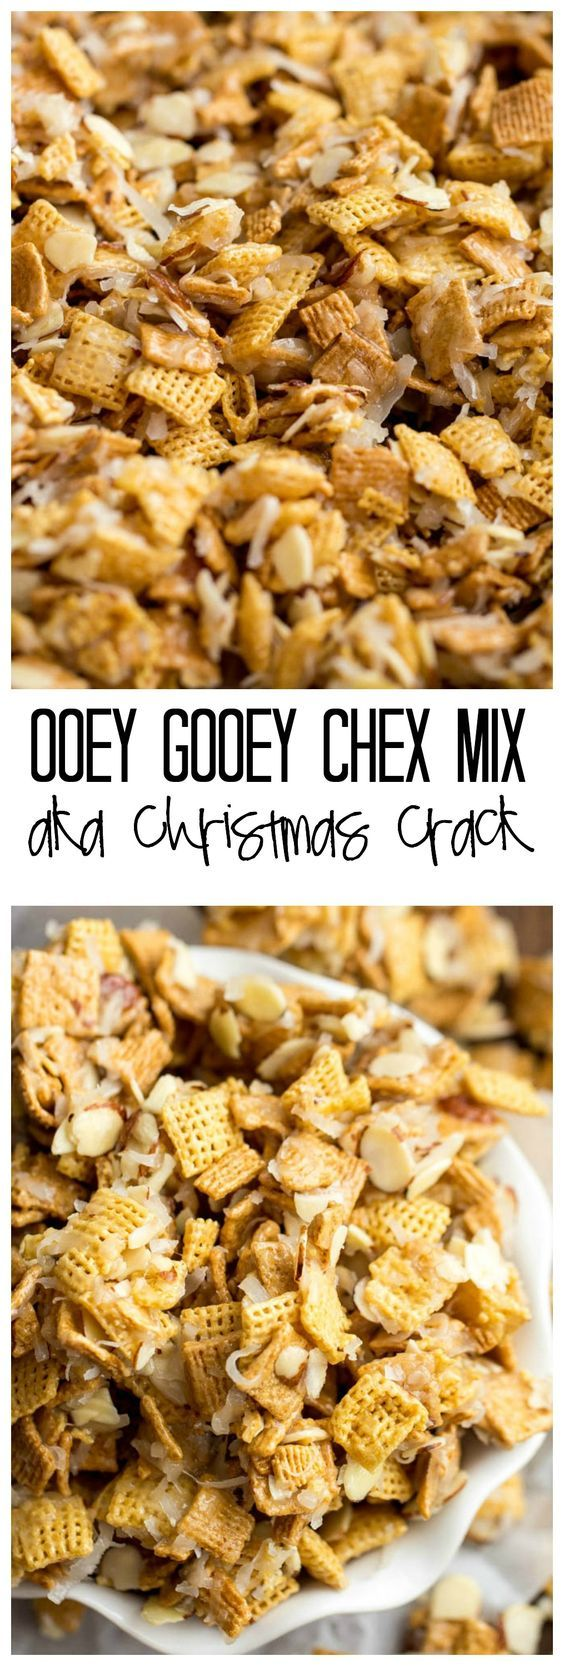 Ooey Gooey Chex Mix aka Christmas crack is so amazing and addicting and the…